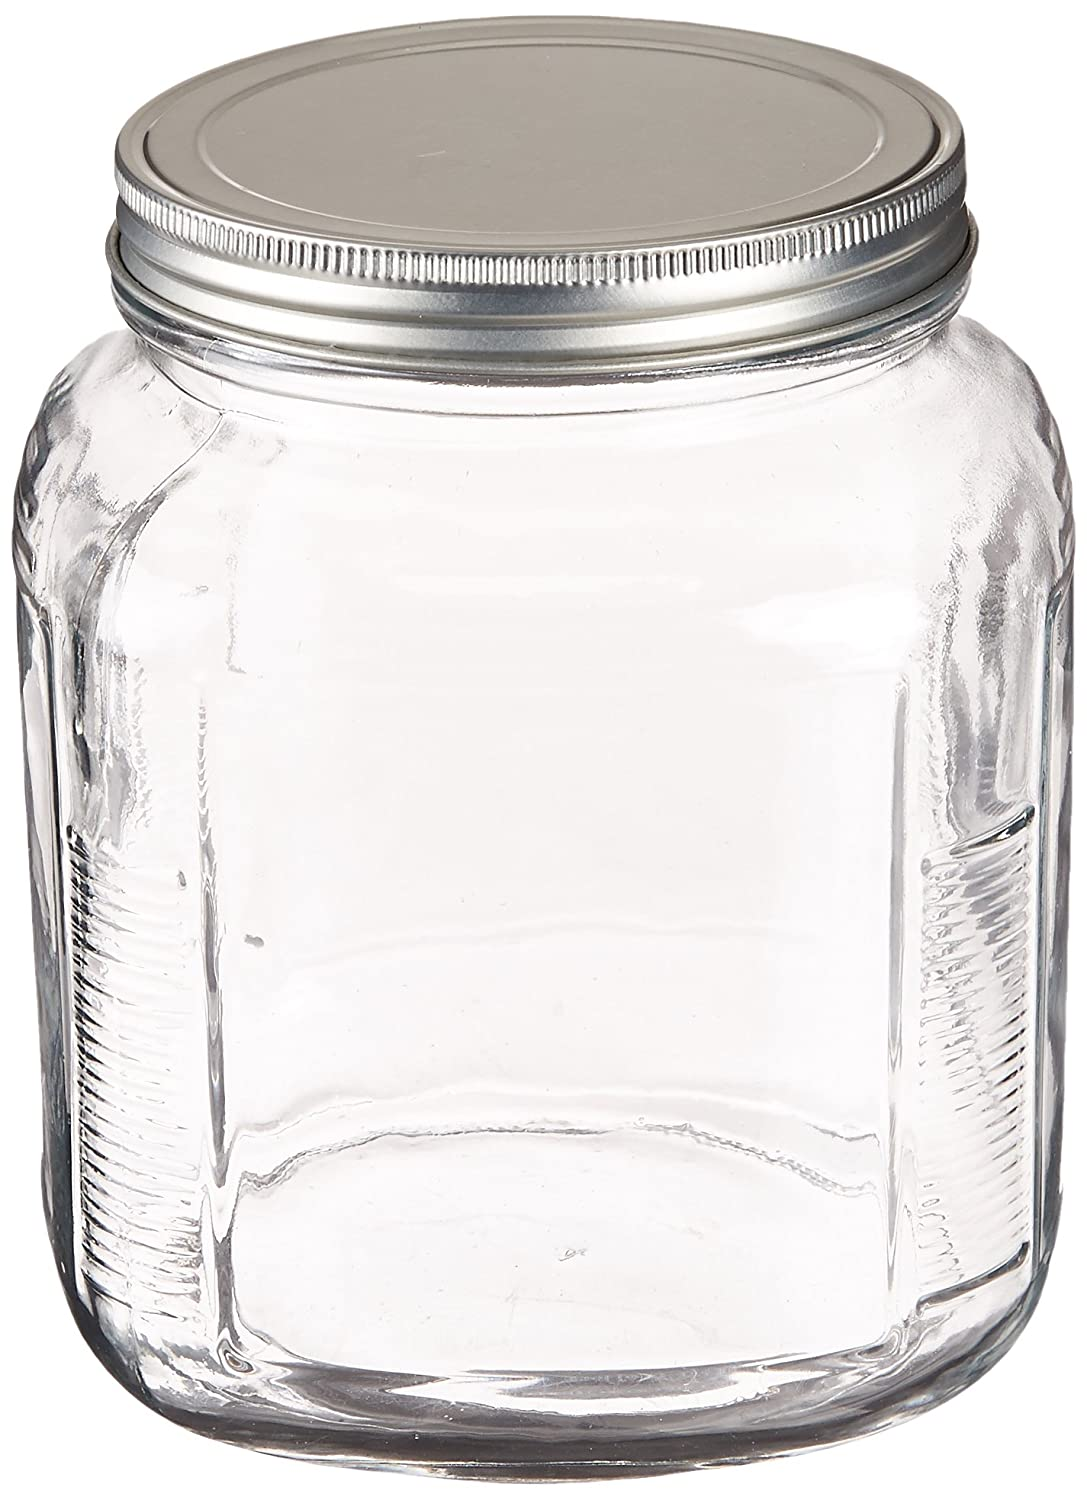 Anchor Hocking 1-Gallon Cracker Jar with Brushed Aluminum Lid, Set of 4 85725